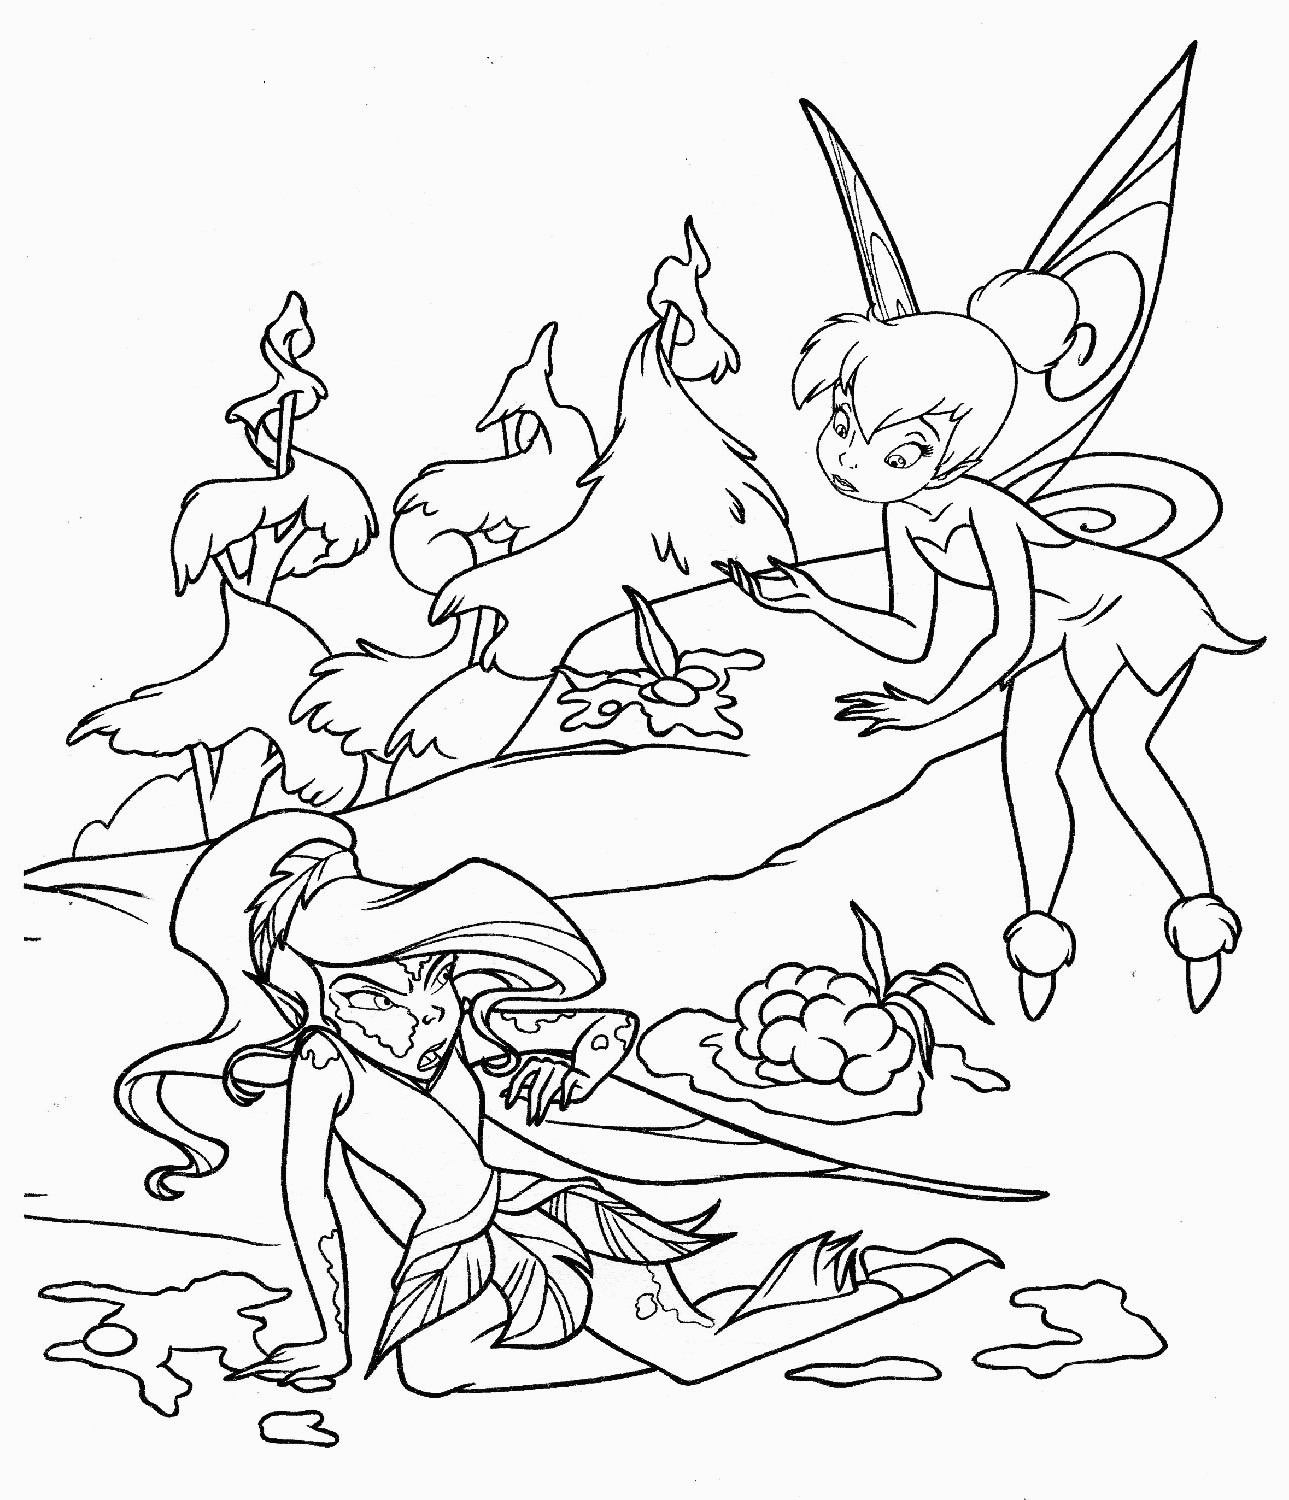 Free Printable Tinkerbell Coloring Pages For Kids For Tinkerbell - Tinkerbell Coloring Pages Printable Free